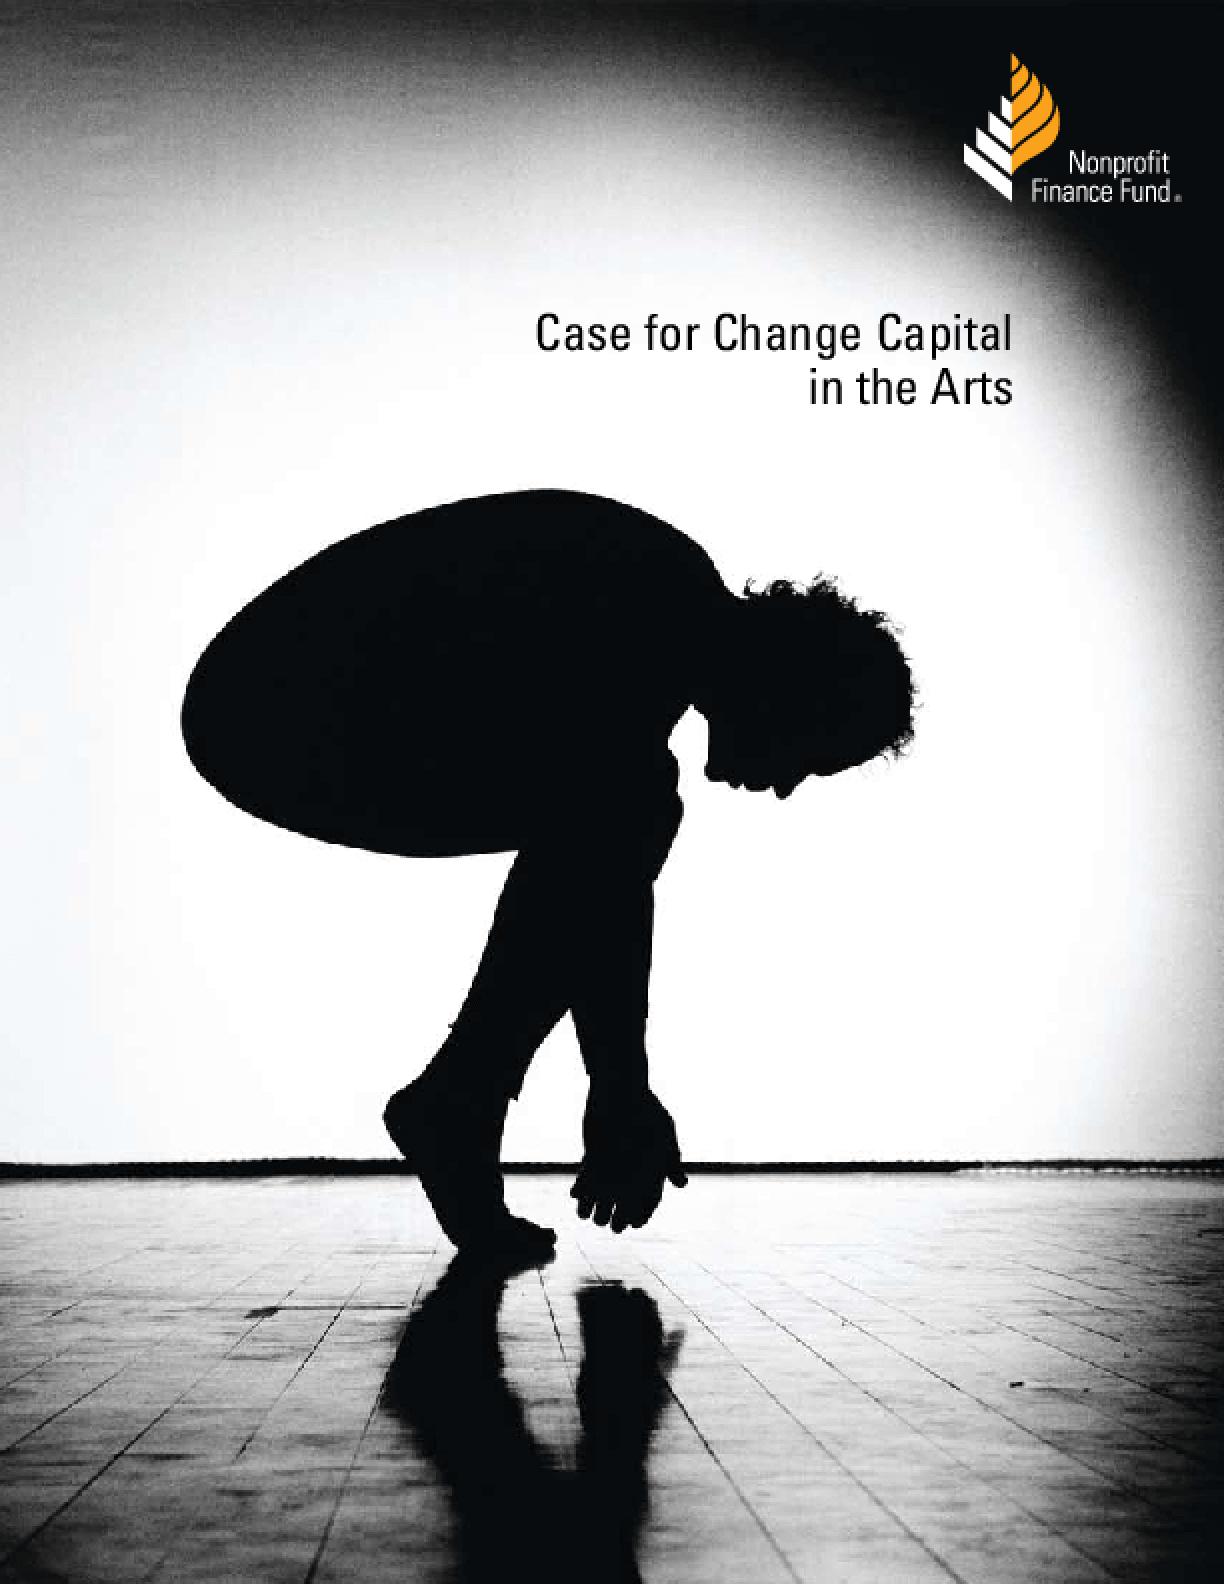 Case for Change Capital in the Arts